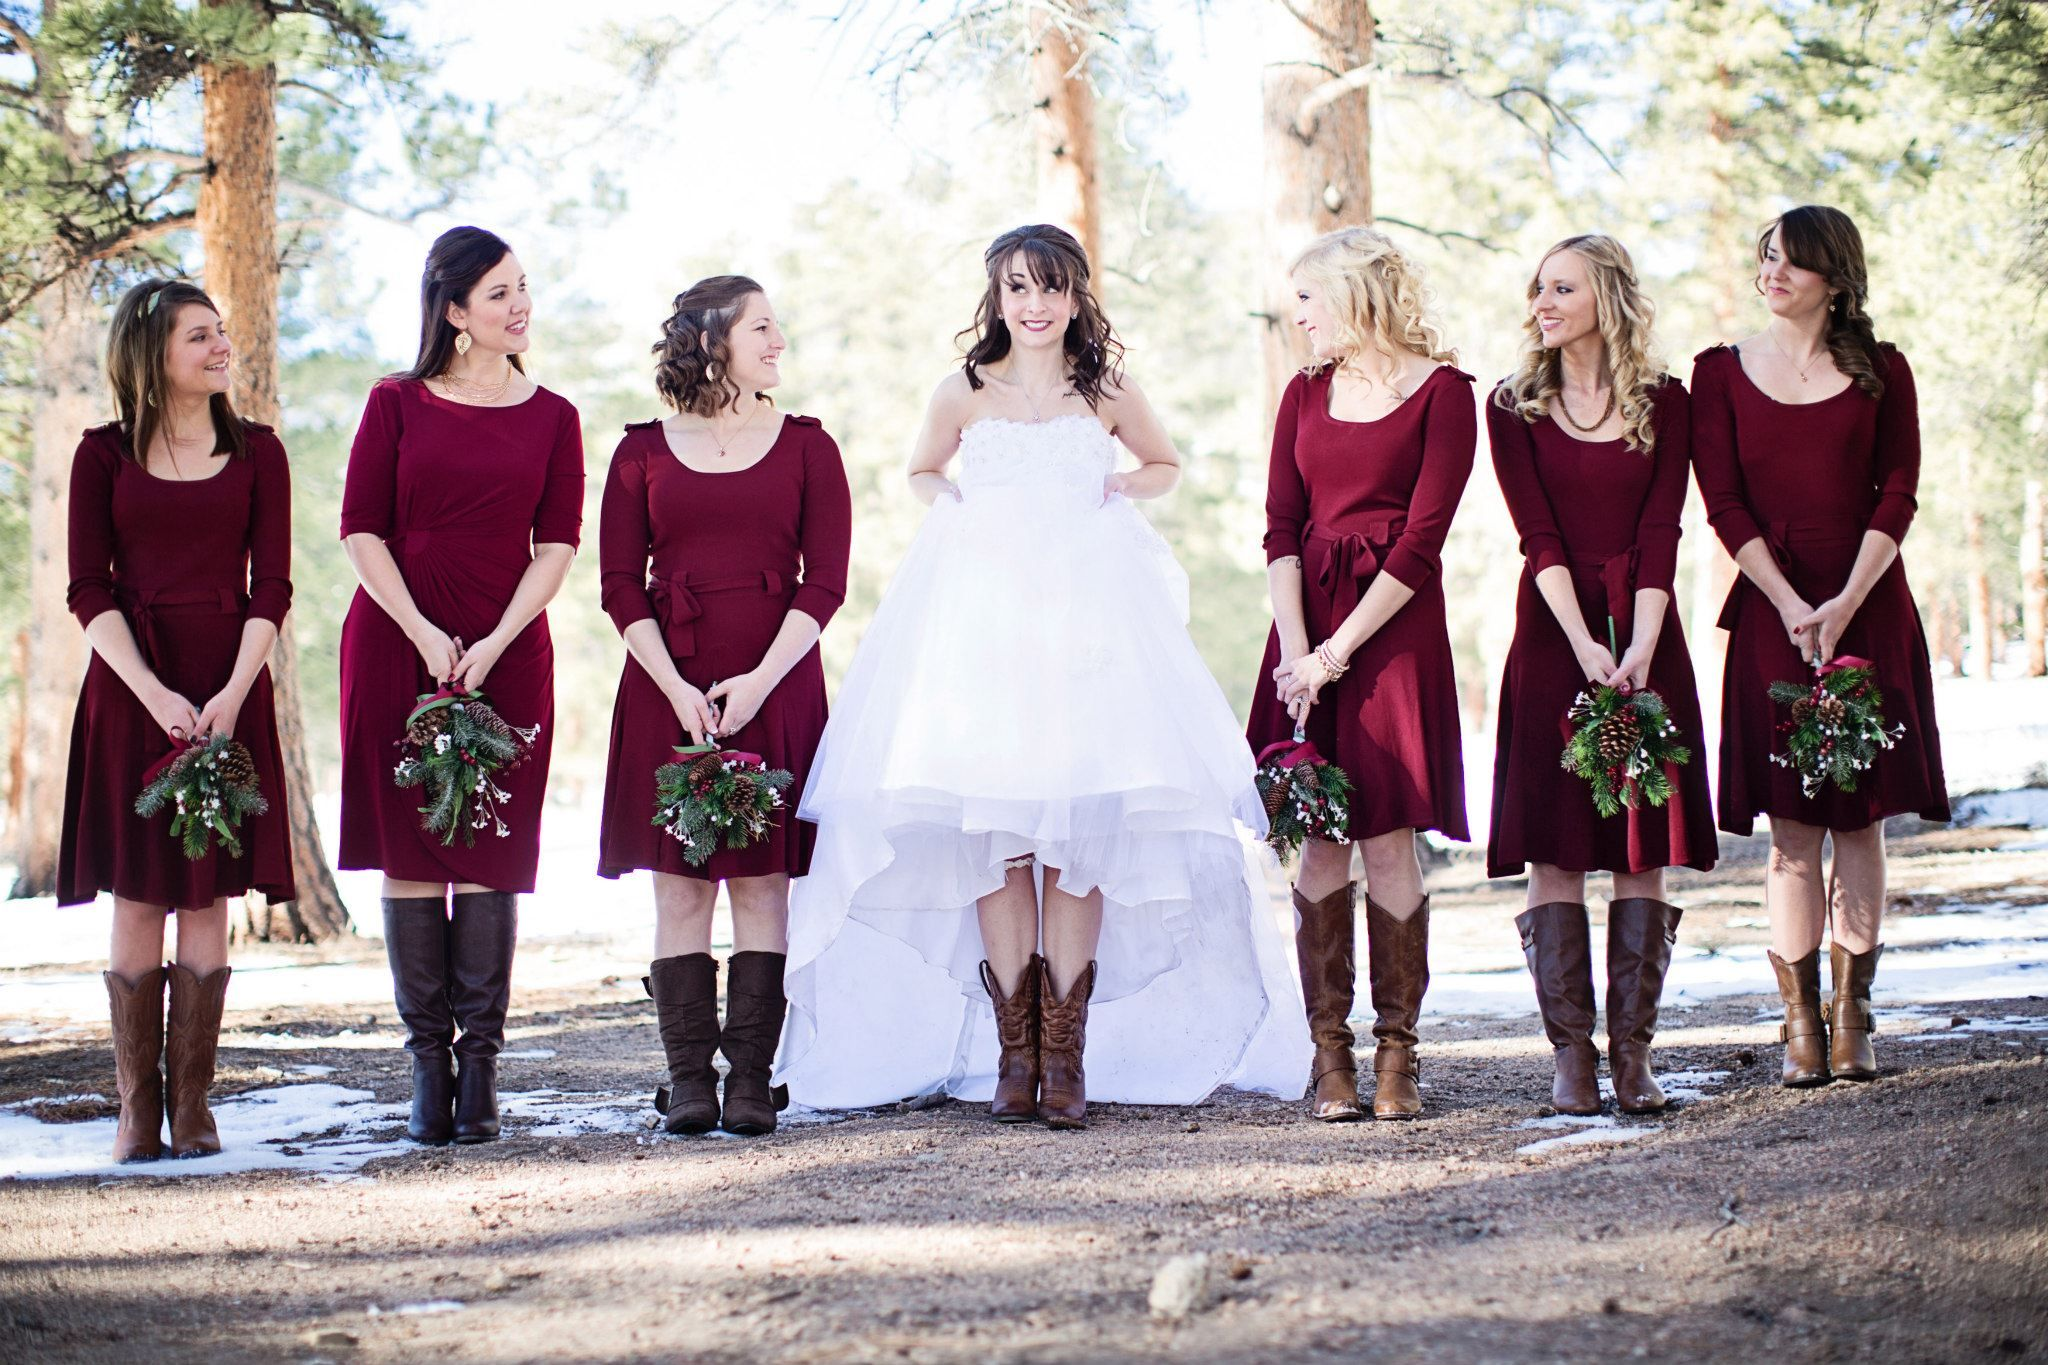 Pin By Natalie Johnson On My Wedding Rustic Bridesmaid Dresses Fall Bridesmaid Dresses Rustic Bridesmaids